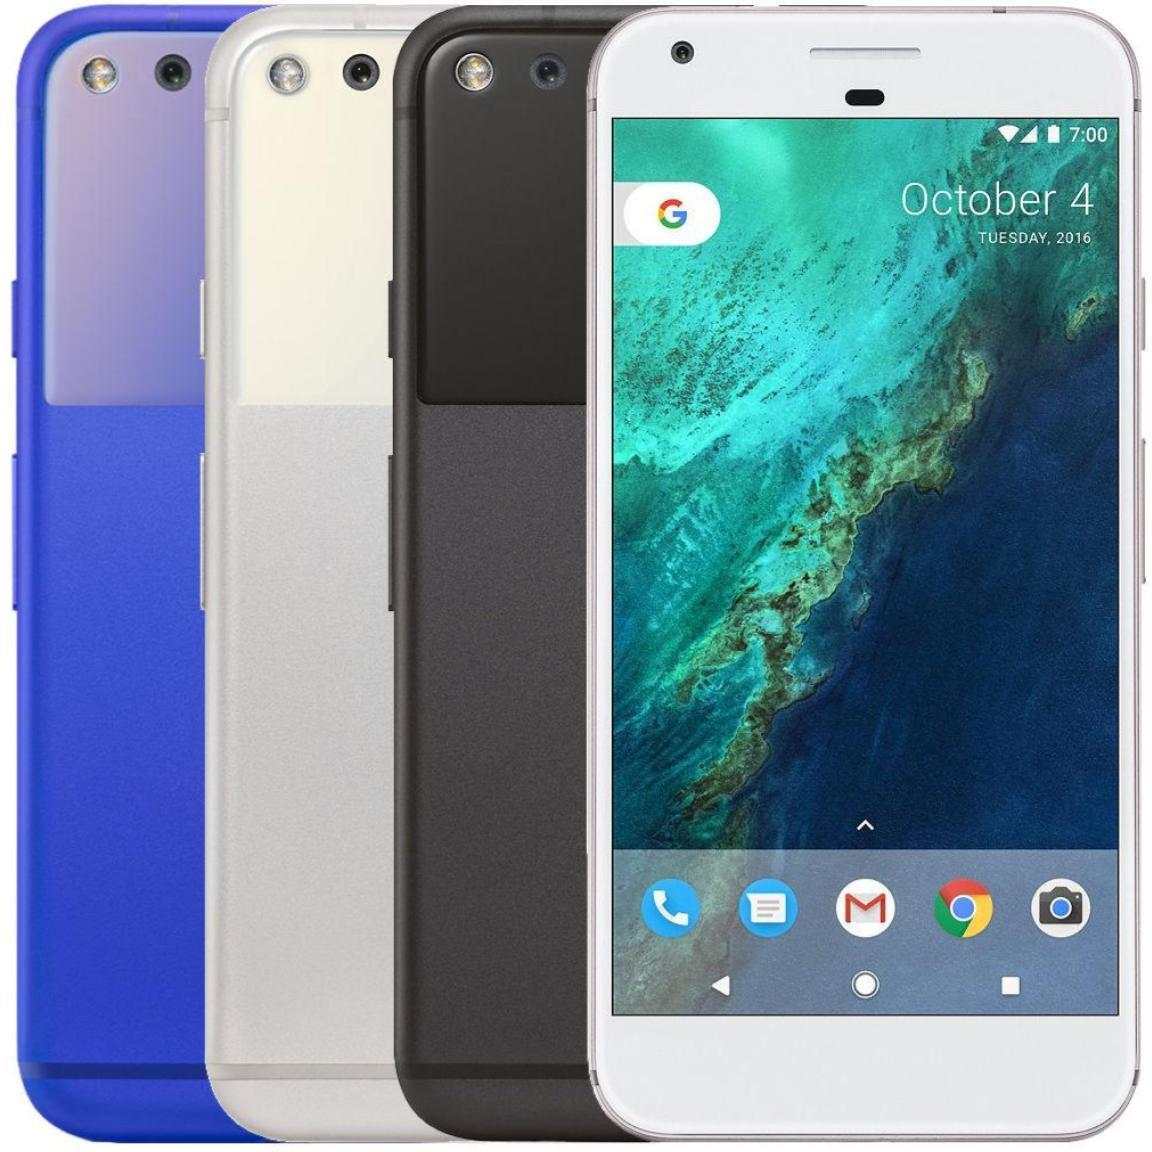 Android Phone - Google Pixel - 32GB (Verizon + GSM Unlocked; AT&T / T-Mobile) Smartphone